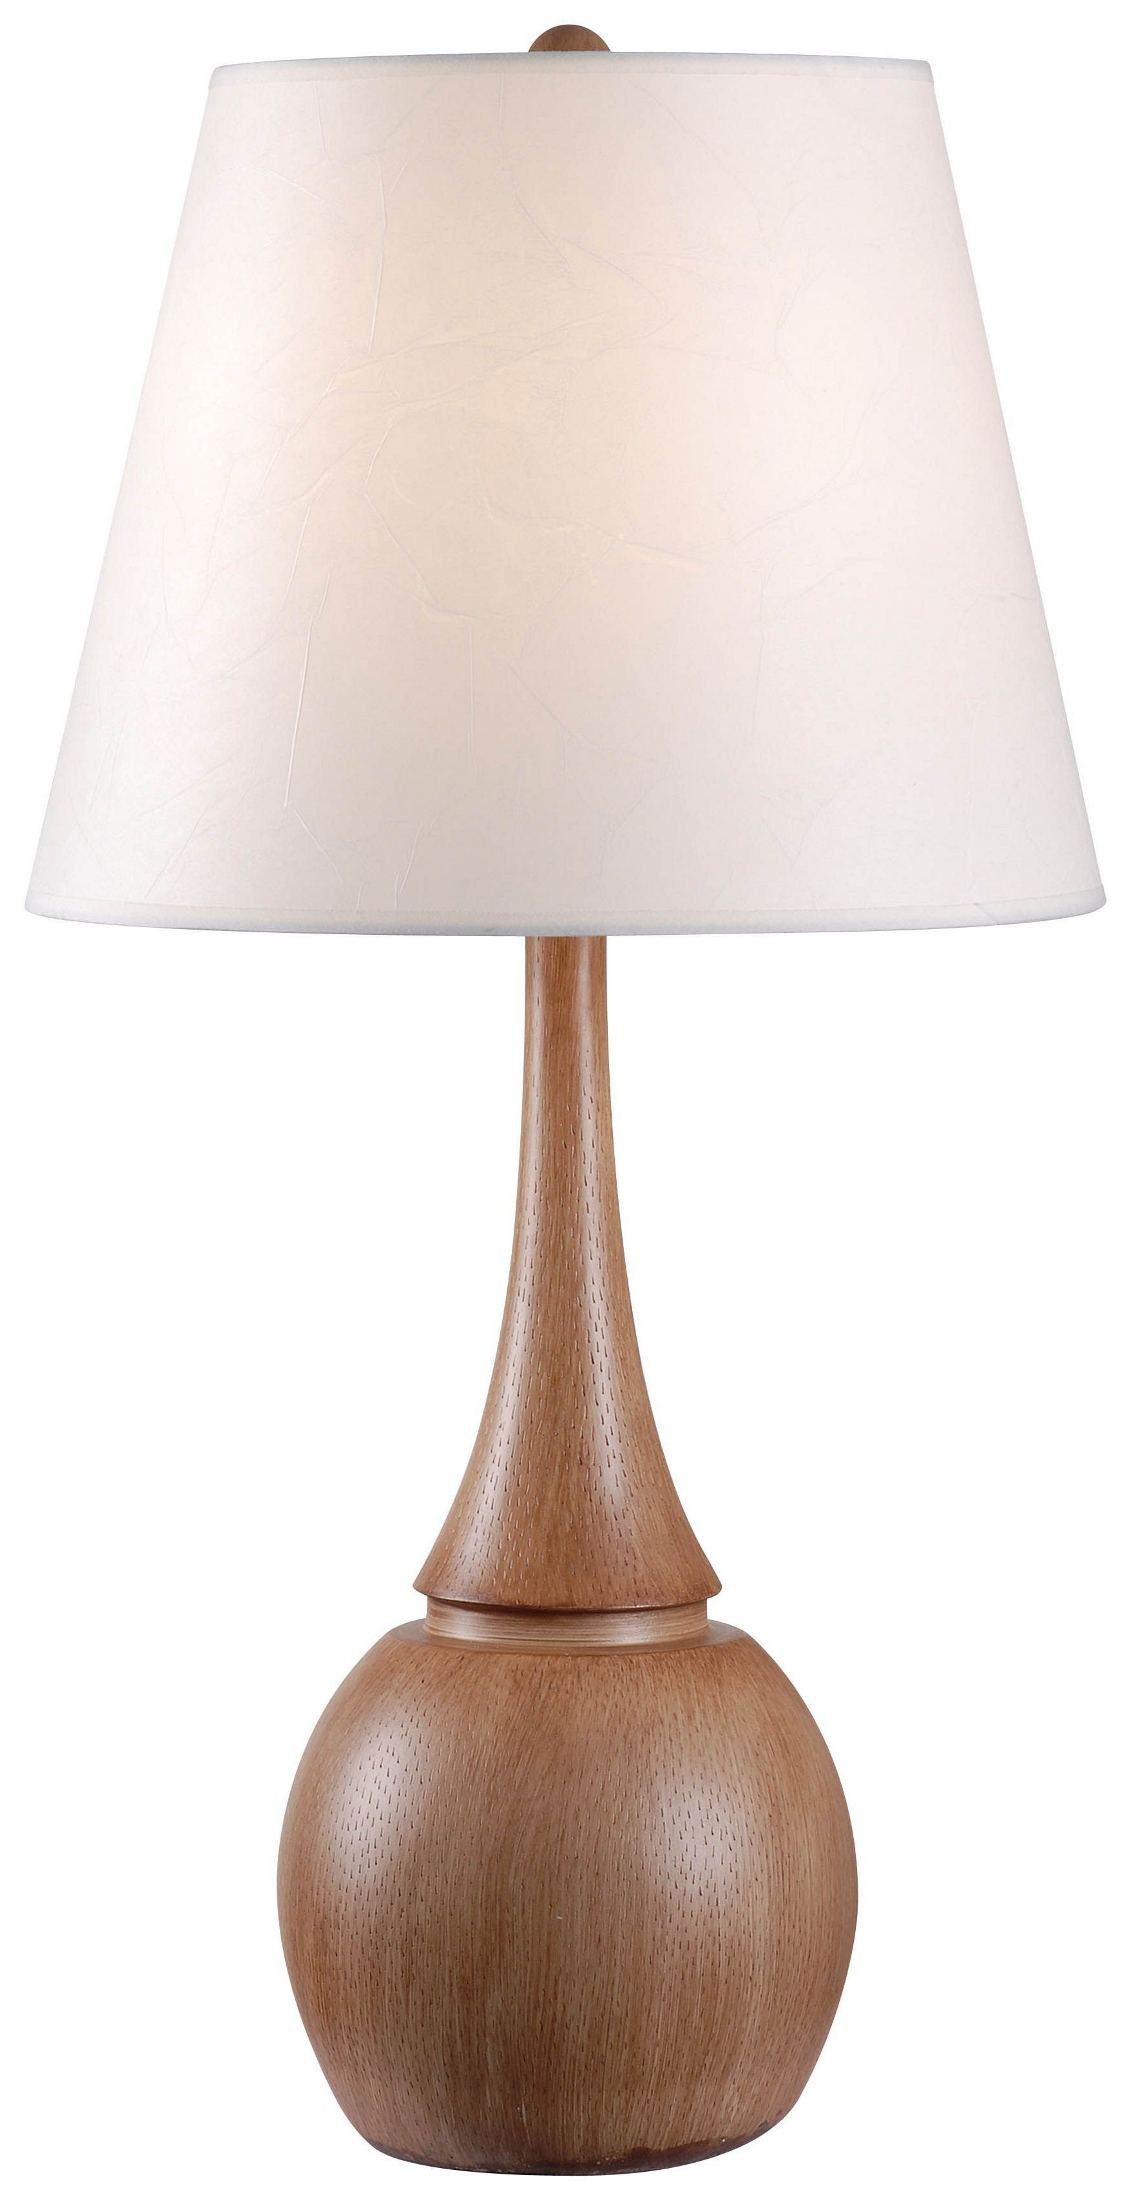 Littlewing beech wood table lamp 32669bw kenroy home for Lamp table beech